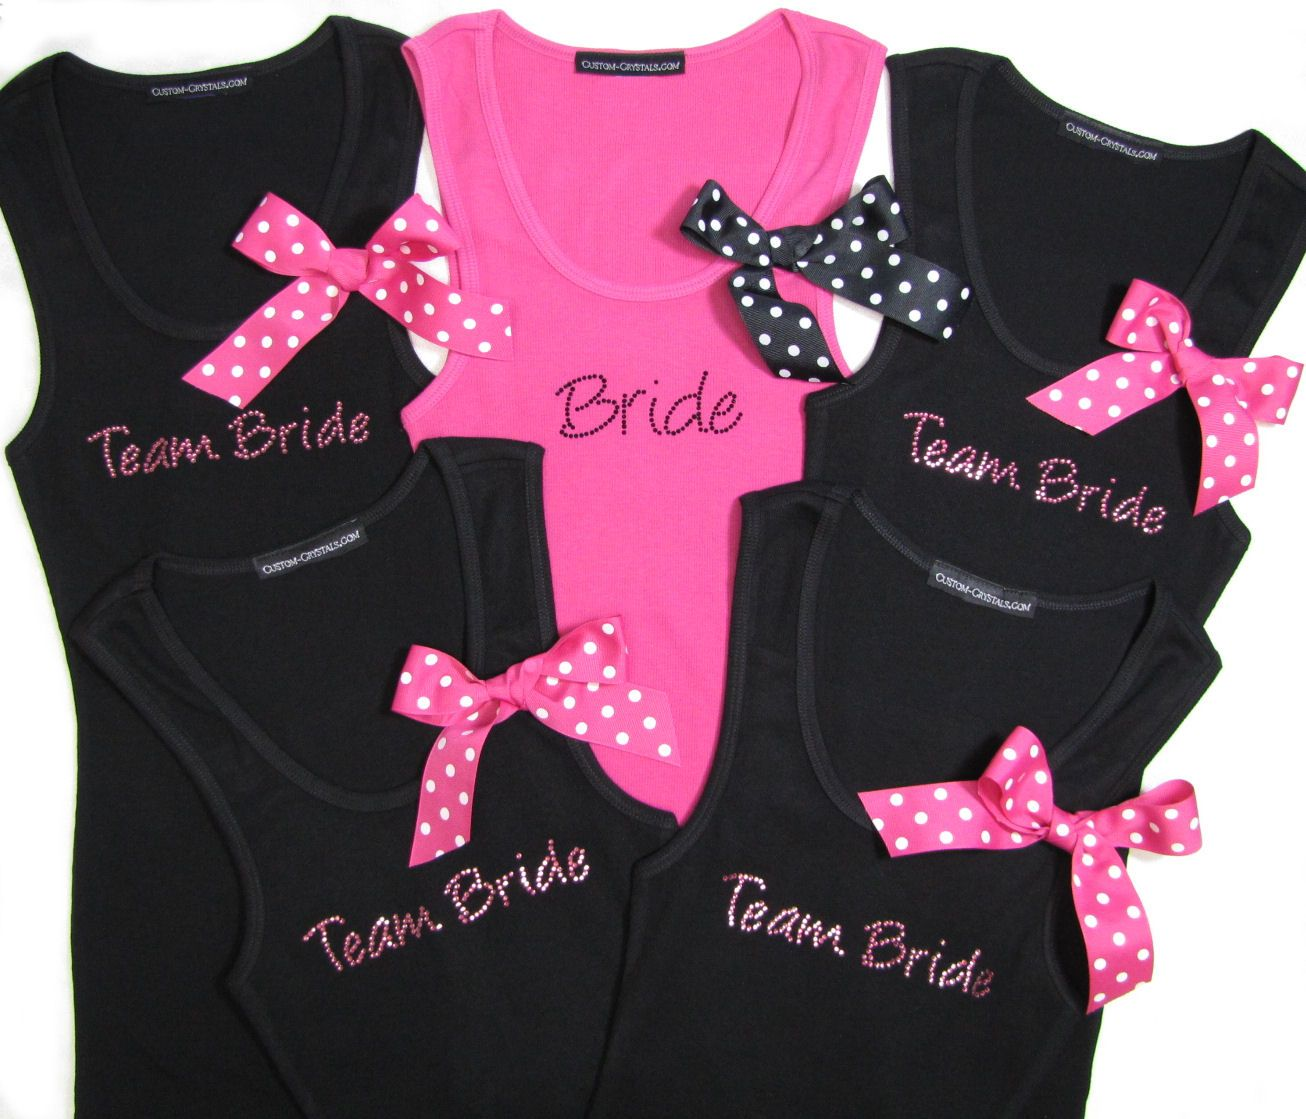 Wedding Bridesmaid T Shirts bride and team tank tops with polka dot ribbons 24 95 bridesmaid t shirts for the rehearsal diner we could get grooms men that say groom a separate one b